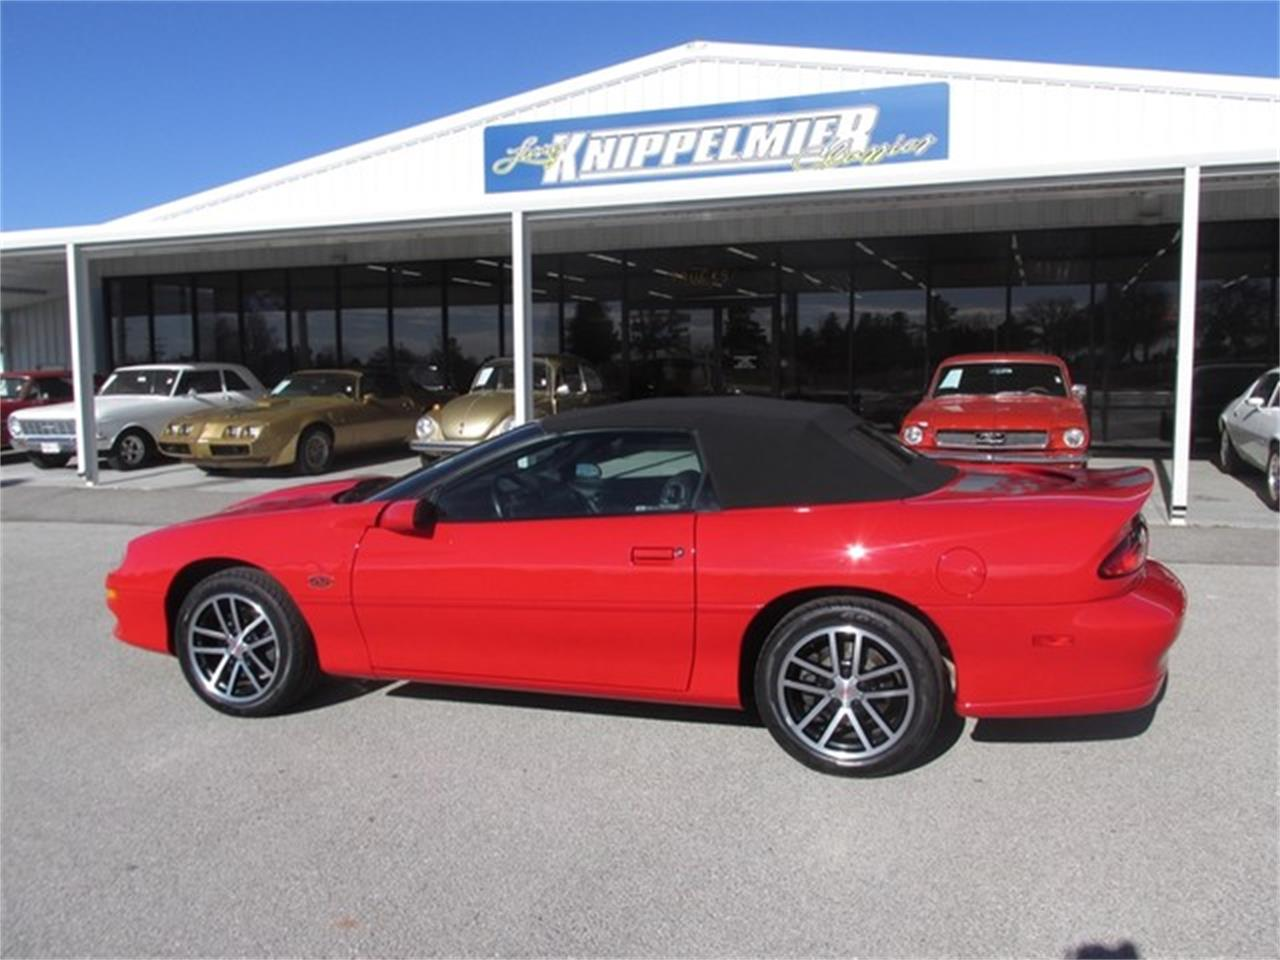 Large Picture of 2002 Chevrolet Camaro located in Oklahoma - $29,000.00 Offered by Knippelmier Classics - DA4T